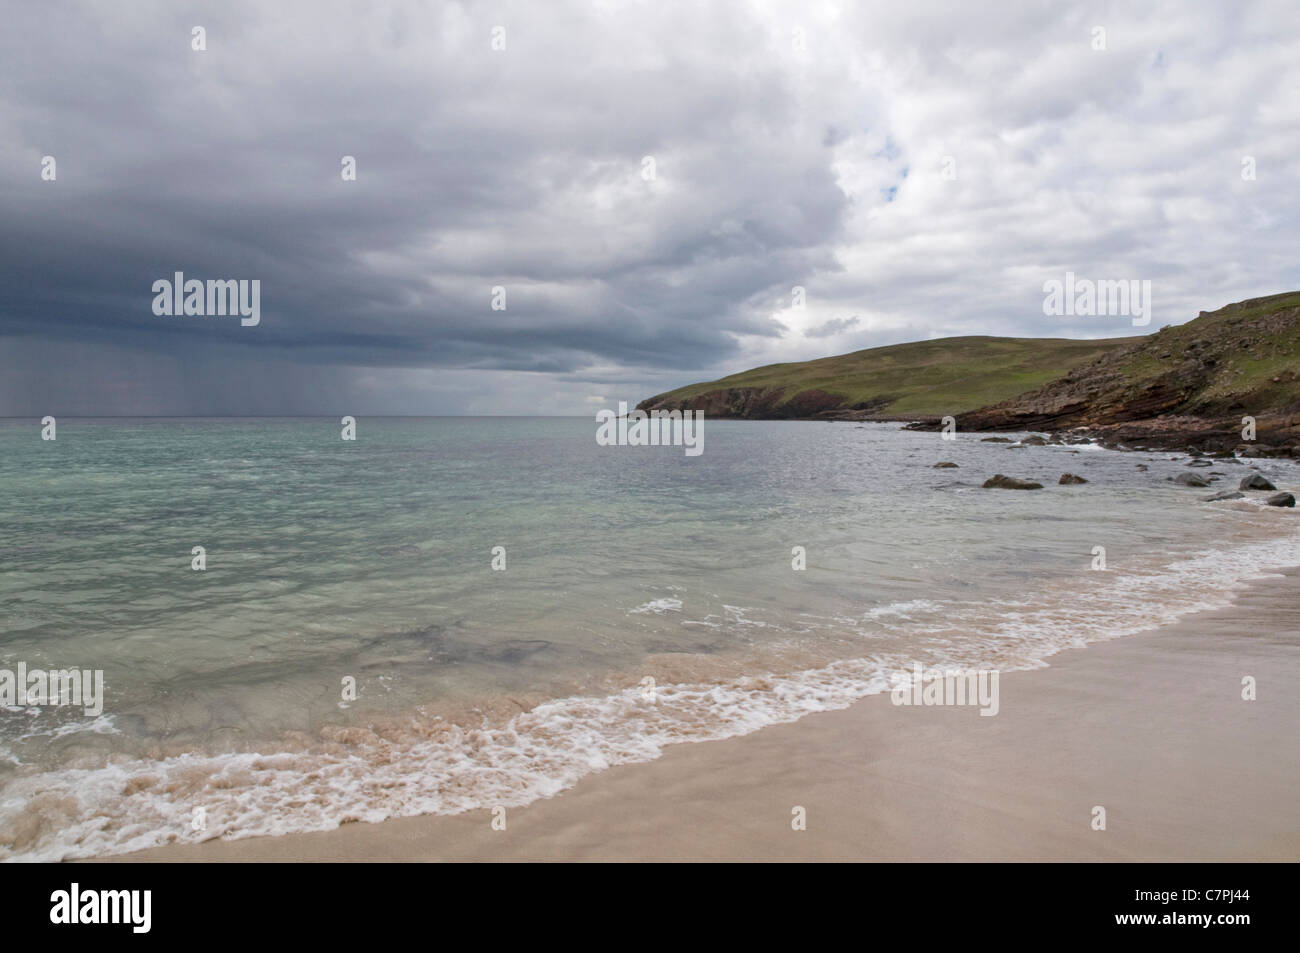 An area of heavy showers approaching the Bay of Stoer on Scotland's northwest coast. - Stock Image